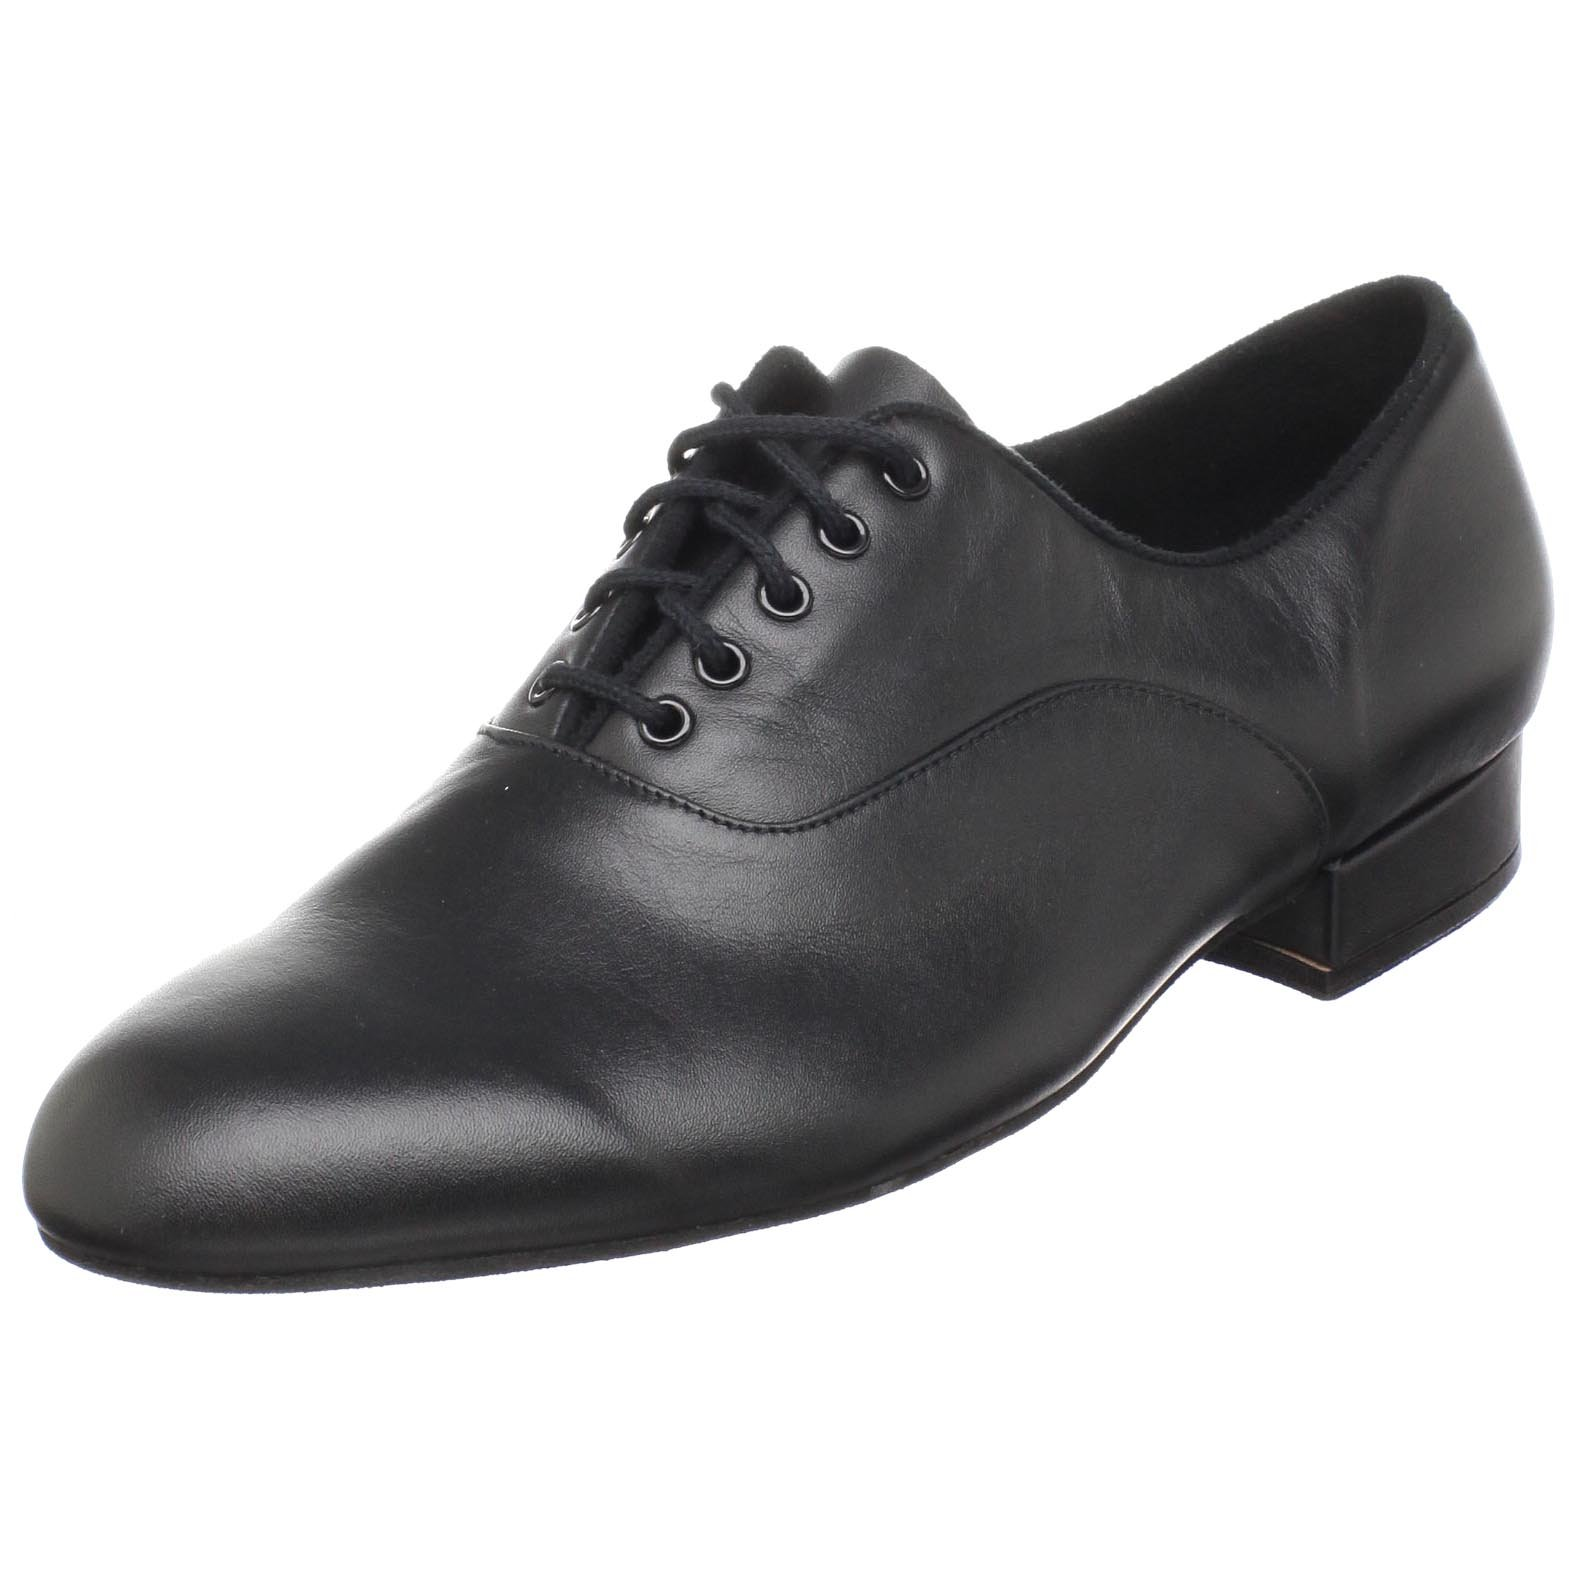 Bloch Men's Xavier Ballroom Dance Shoe, Black, 6 X(Medium) US by Bloch